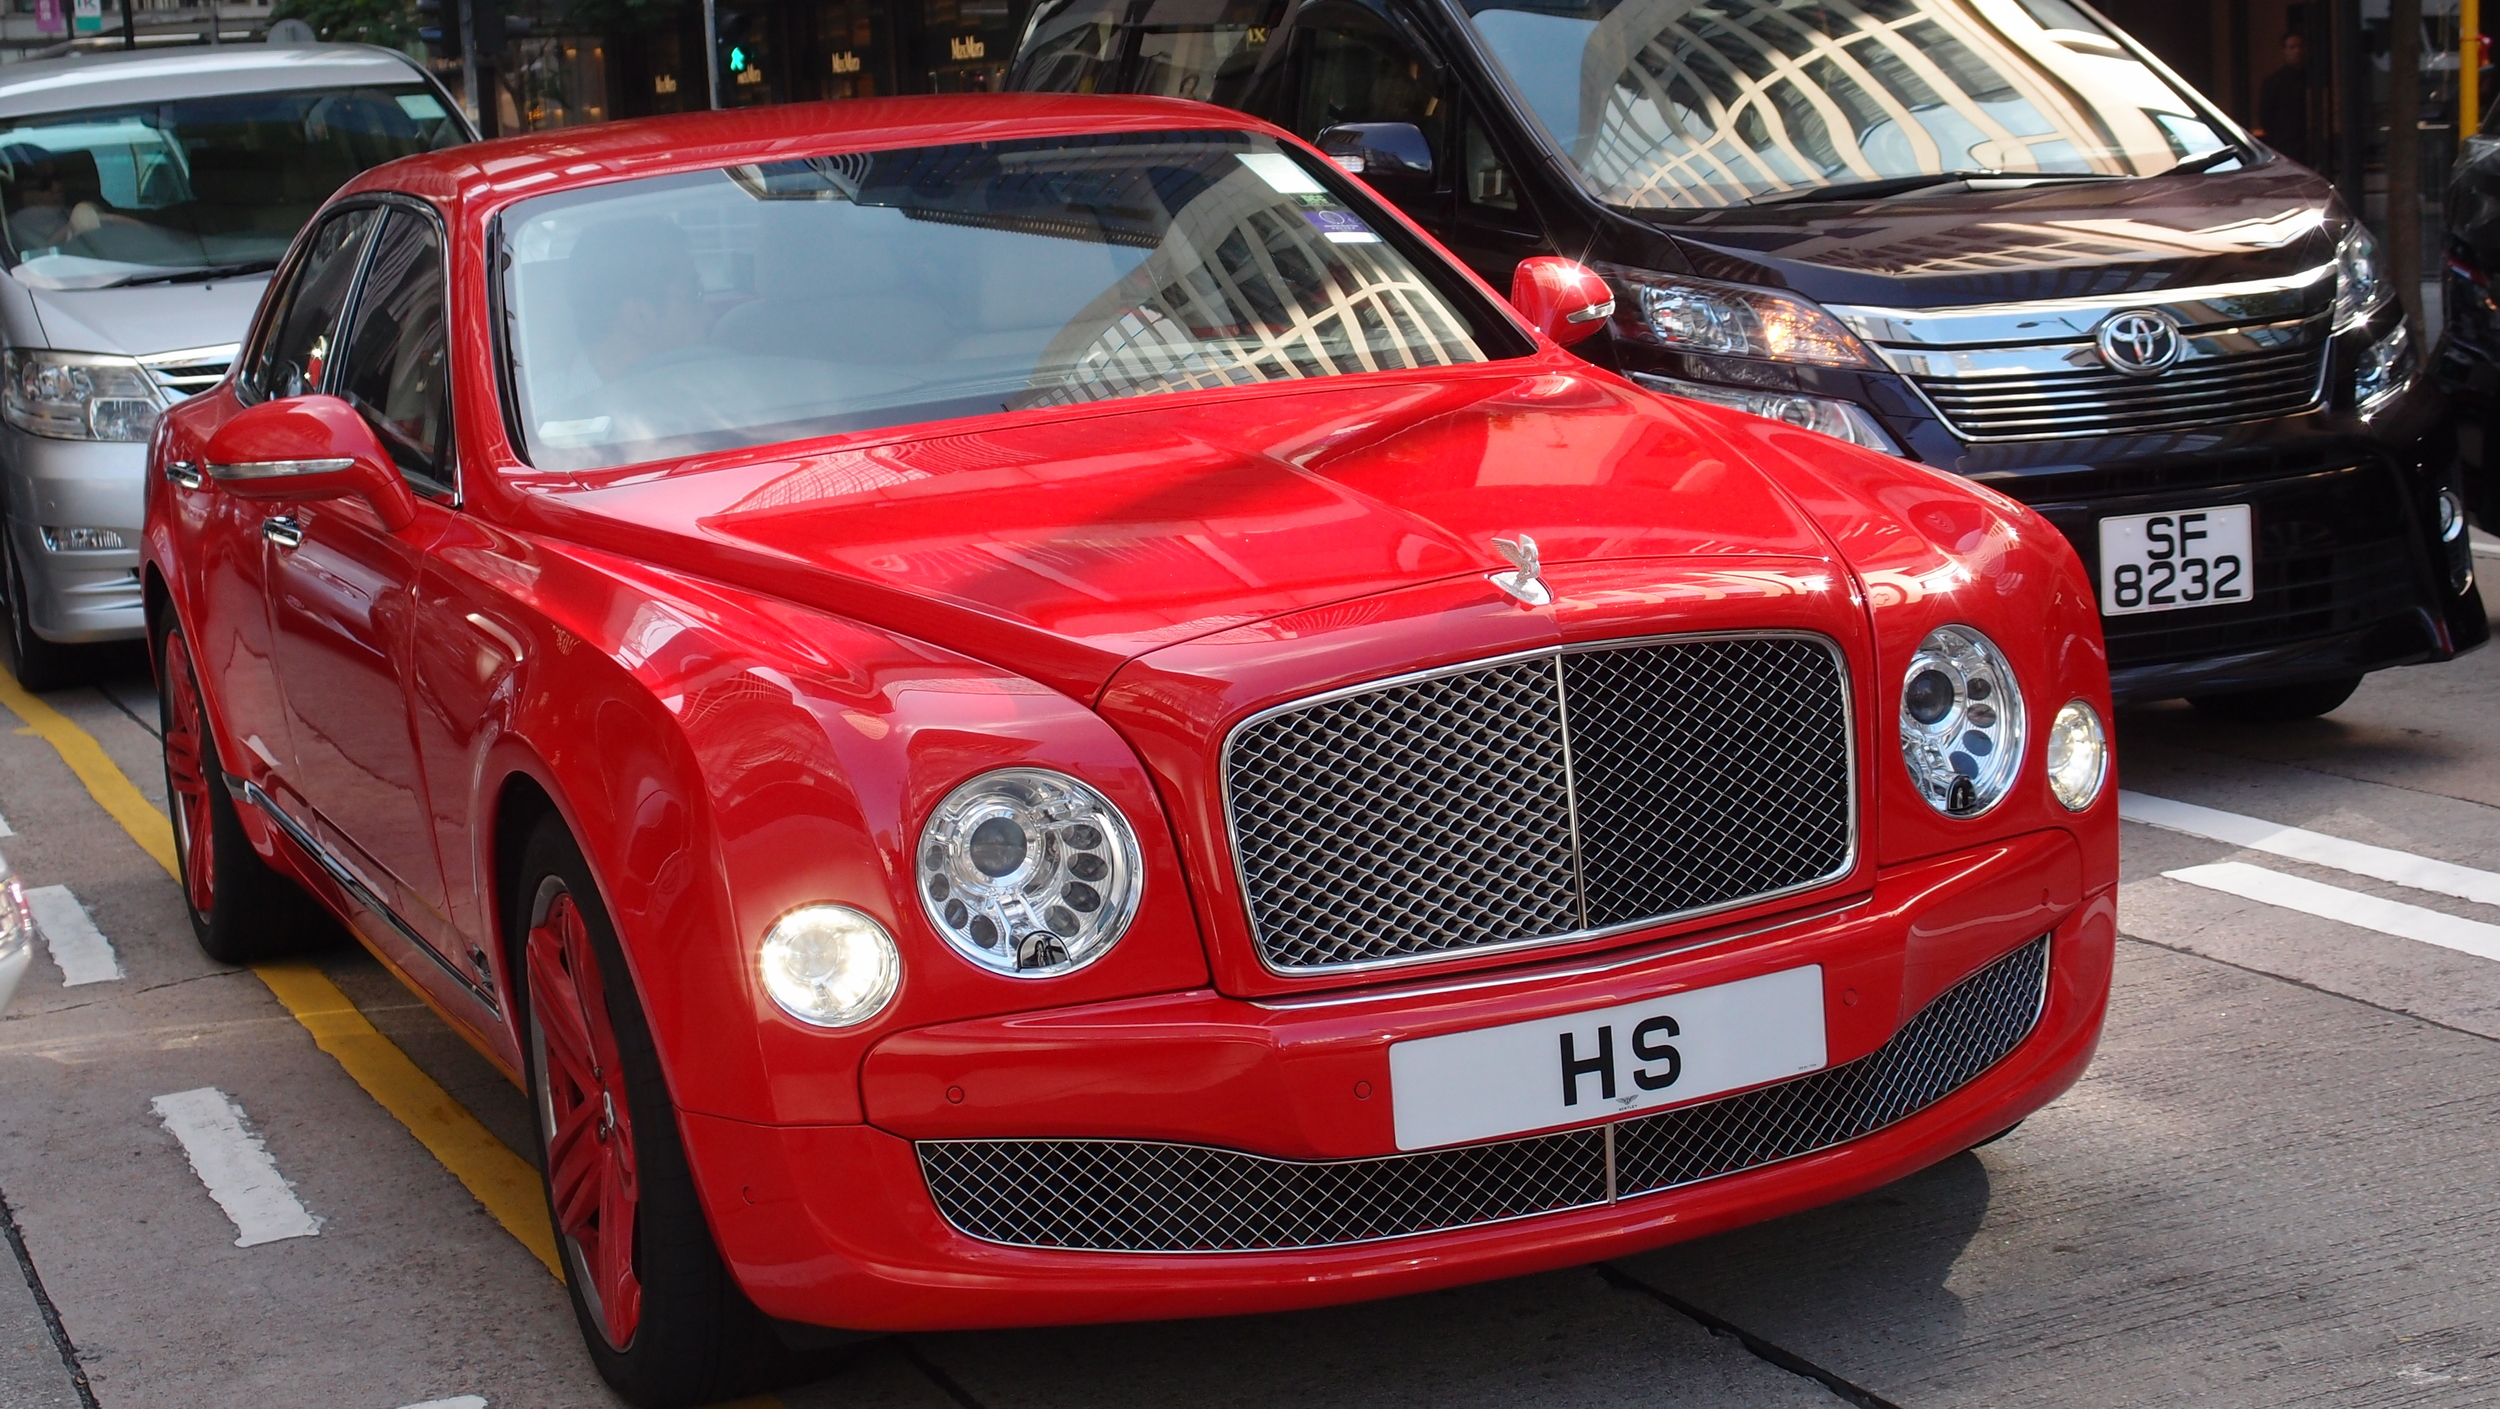 The magnificent shimmering red Bentley